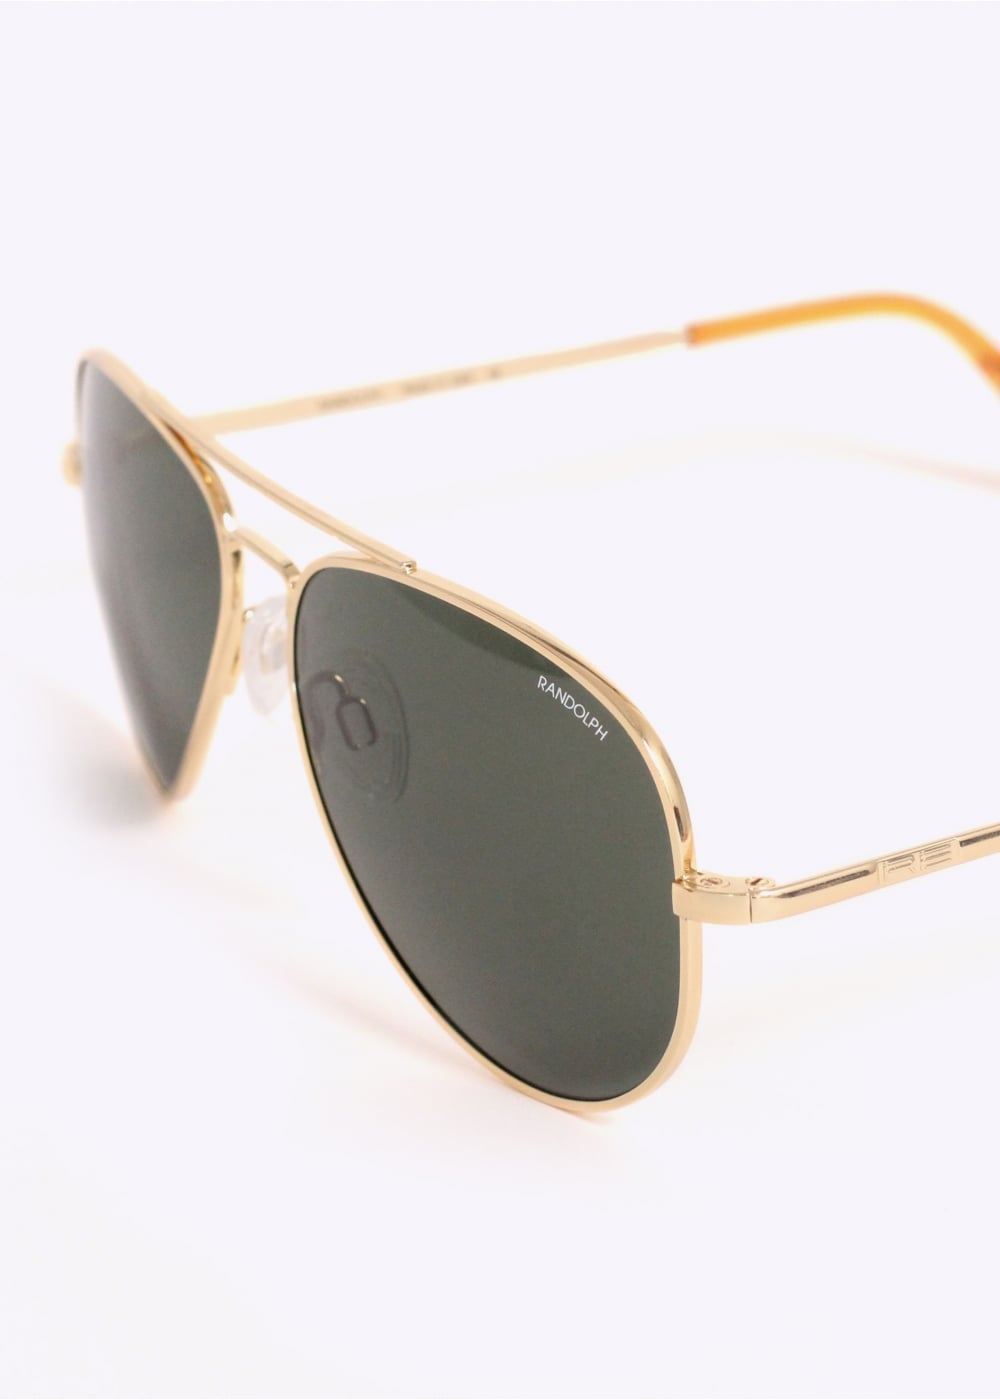 randolph engineering concorde sunglasses gold agx 5